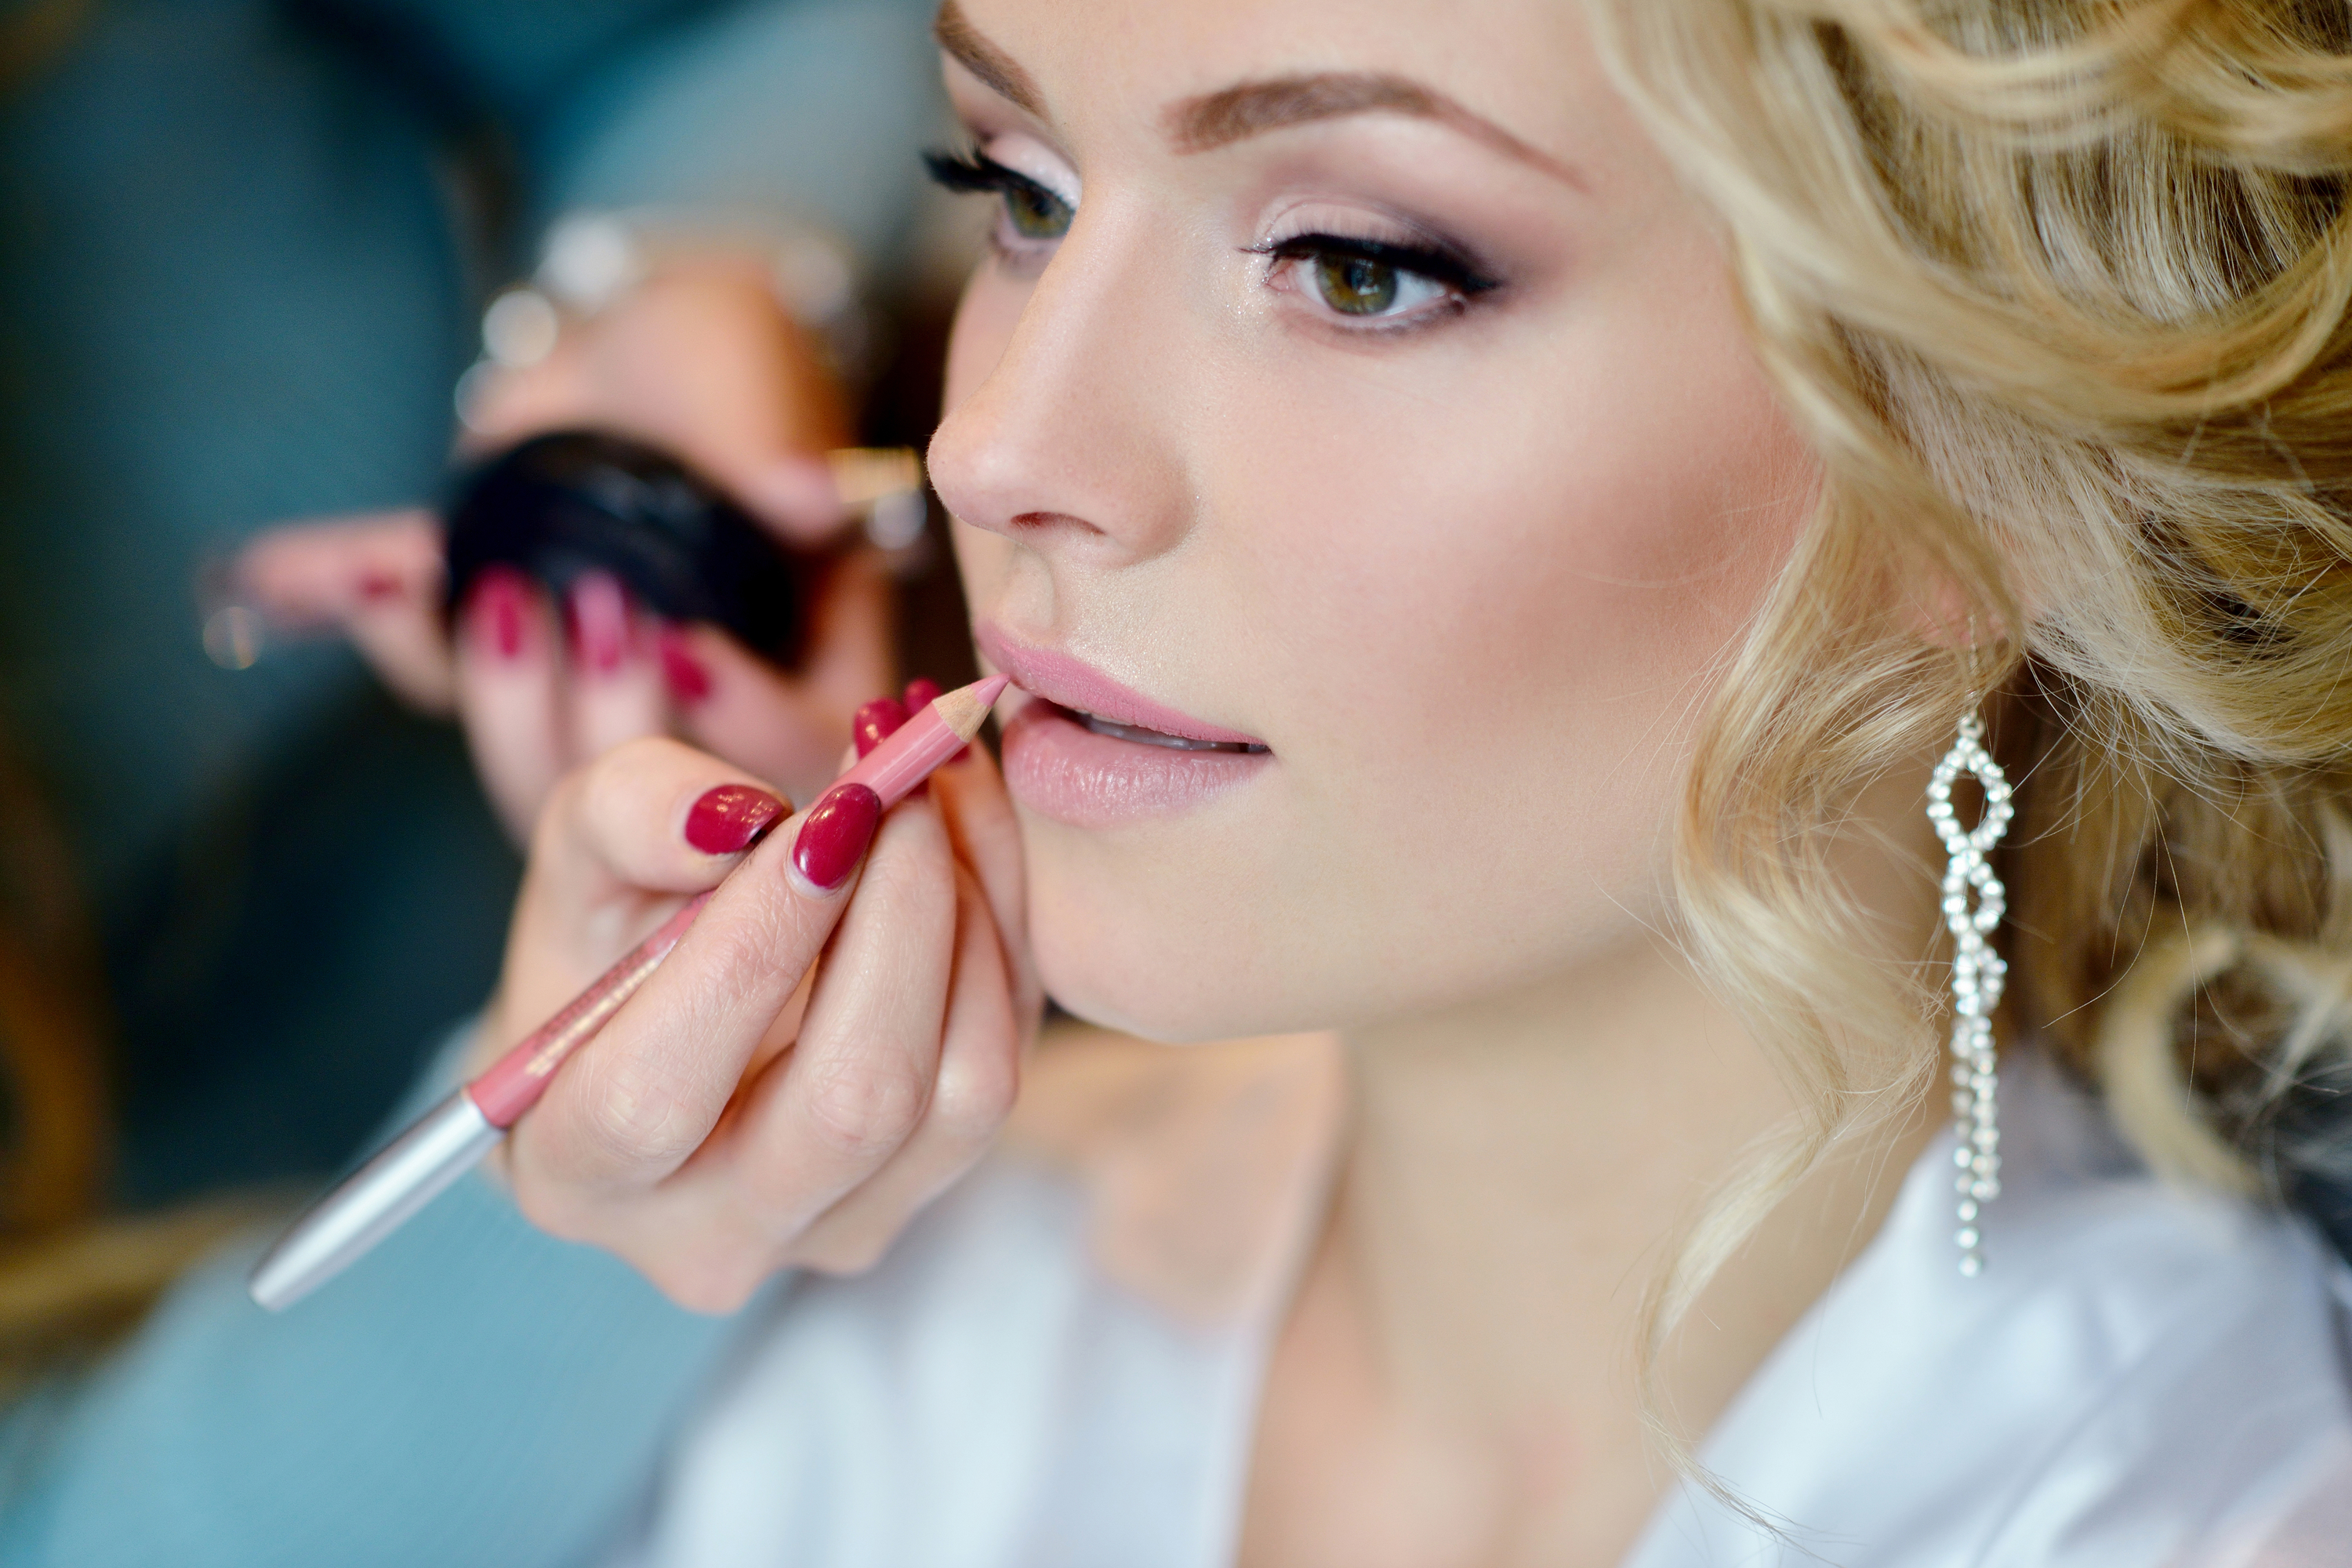 If you're planning a winter wedding, you'll want to know these winter wedding makeup tips. They will have you looking amazing on your big day.